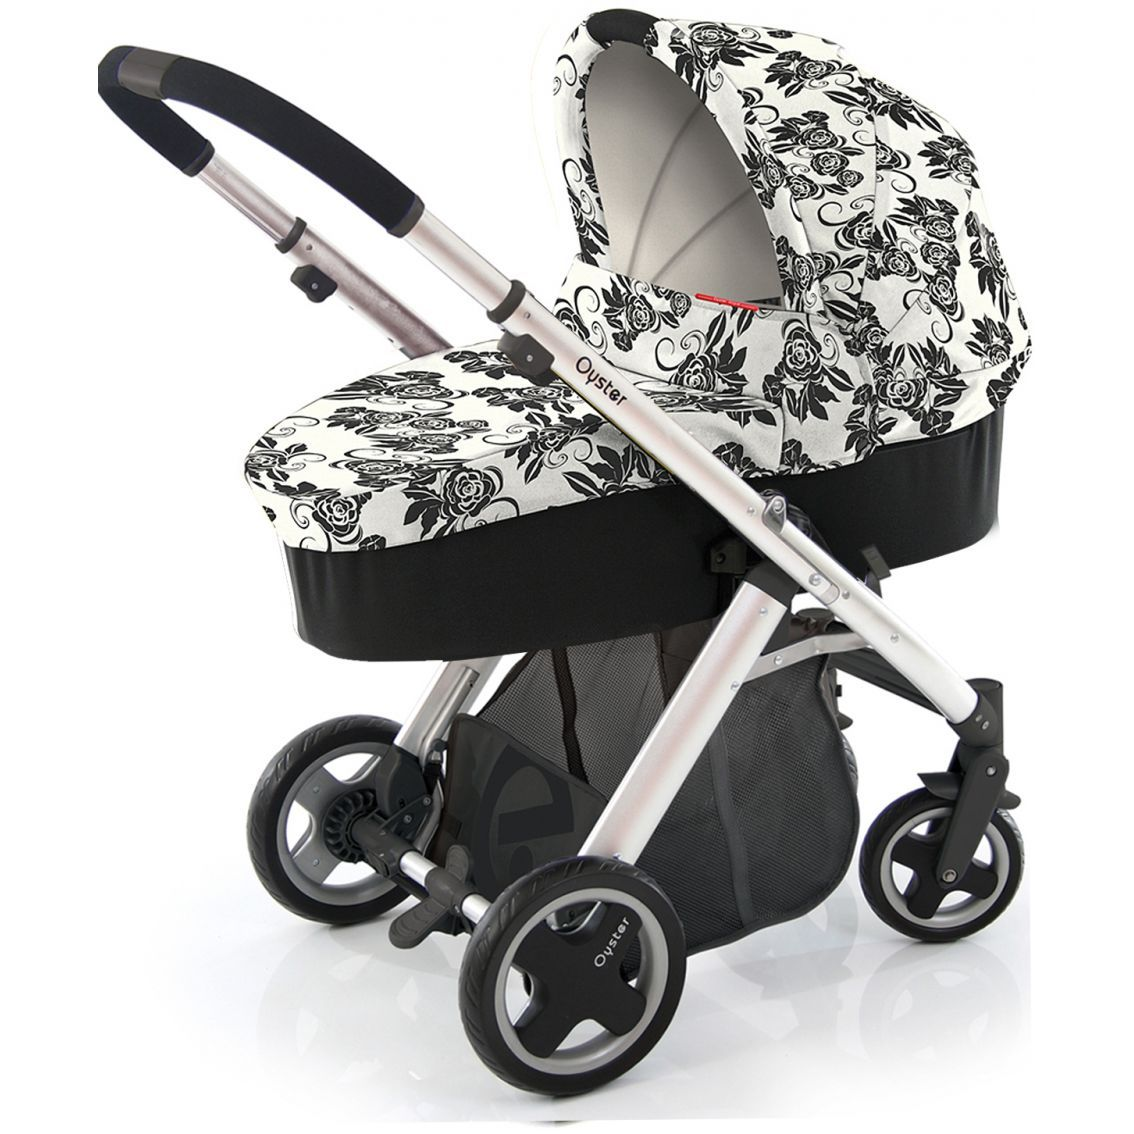 Babystyle Oyster Babystyle Oyster Vogue 3 in 1 Pram Black